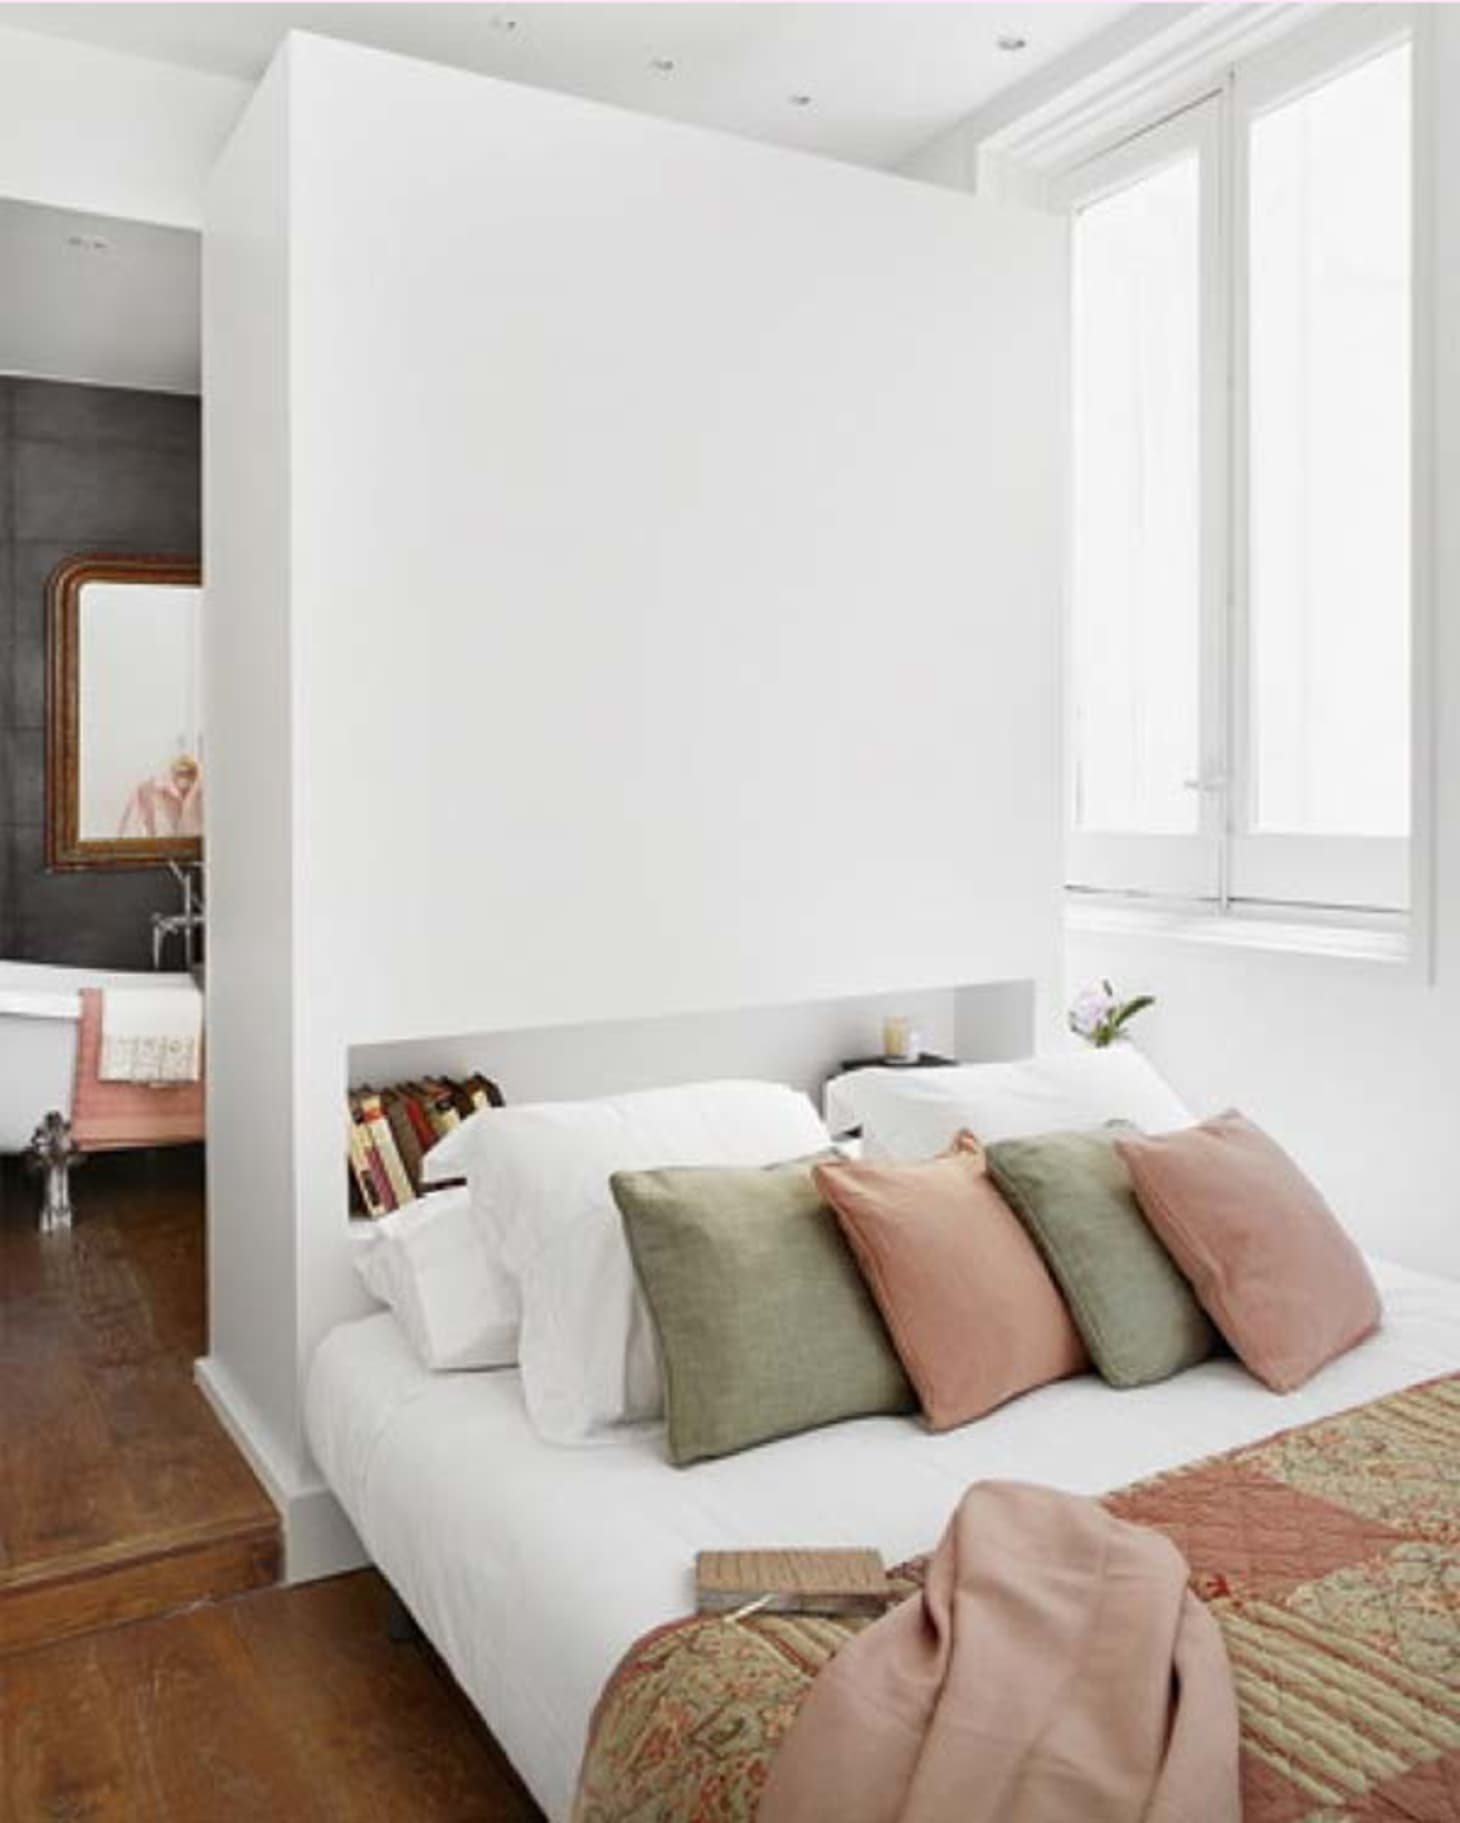 10 Ideas for Dividing Small Spaces | Apartment Therapy